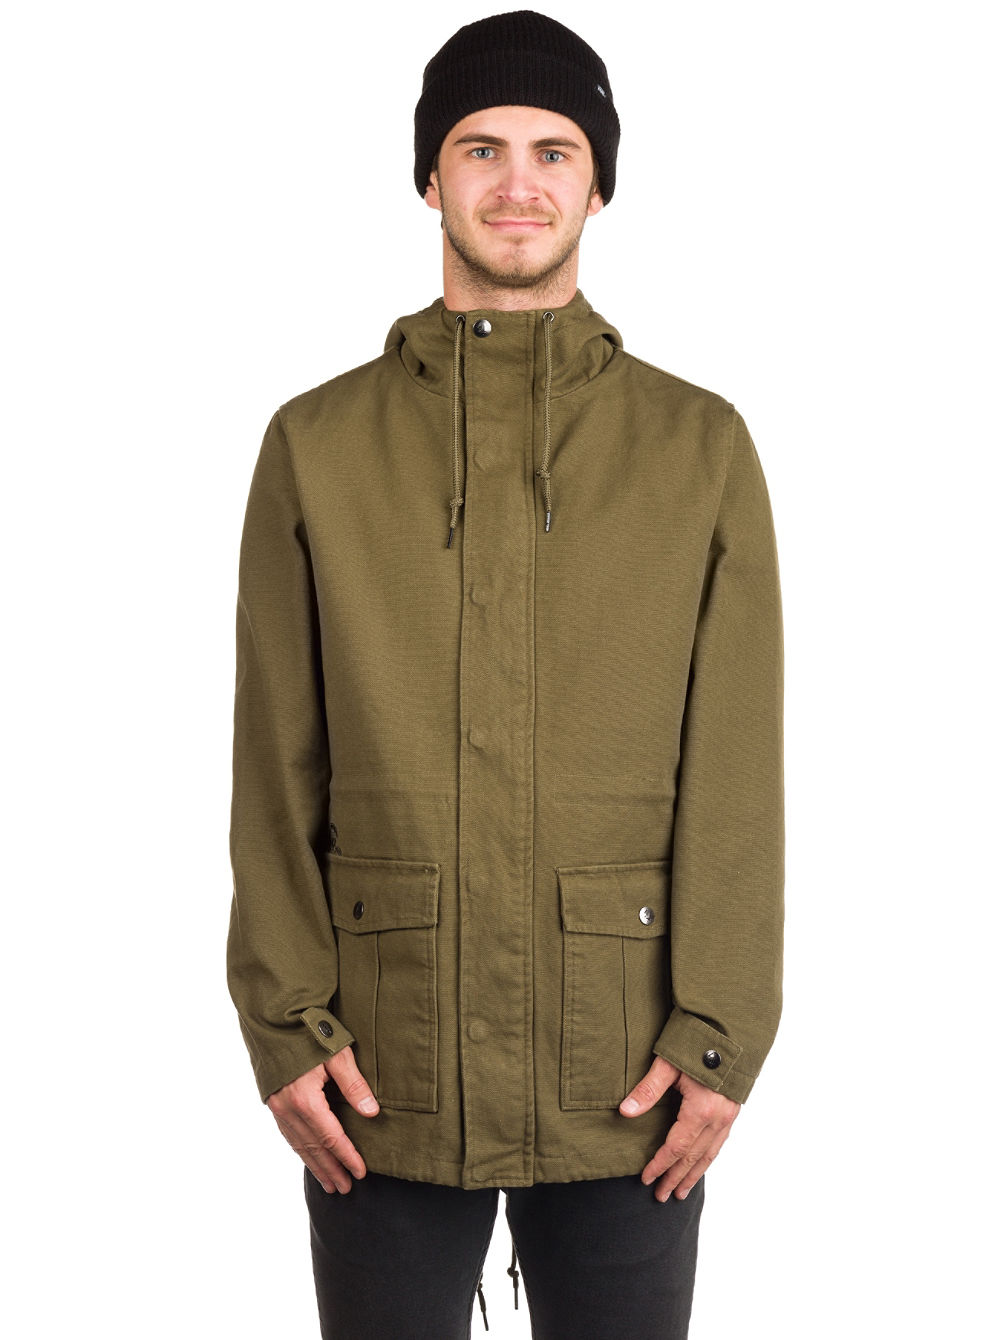 Buy Sketchy Tank Dan Blk Twil Parka Jacket online at blue-tomato.com